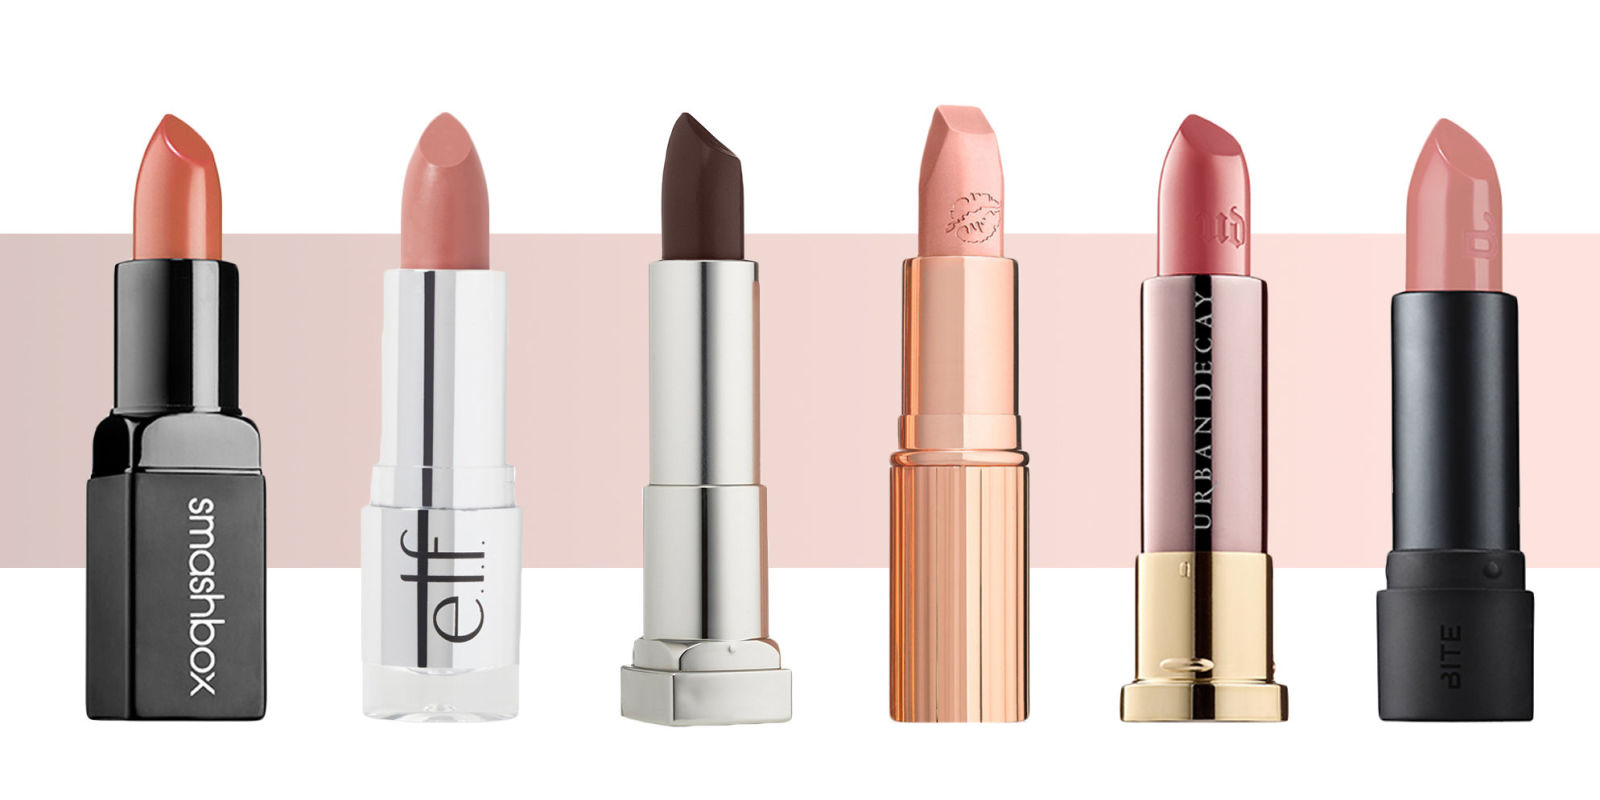 12 Best Nude Lipstick Colors Of 2017 Nude And Neutral Lipstick For Every Skin Tone